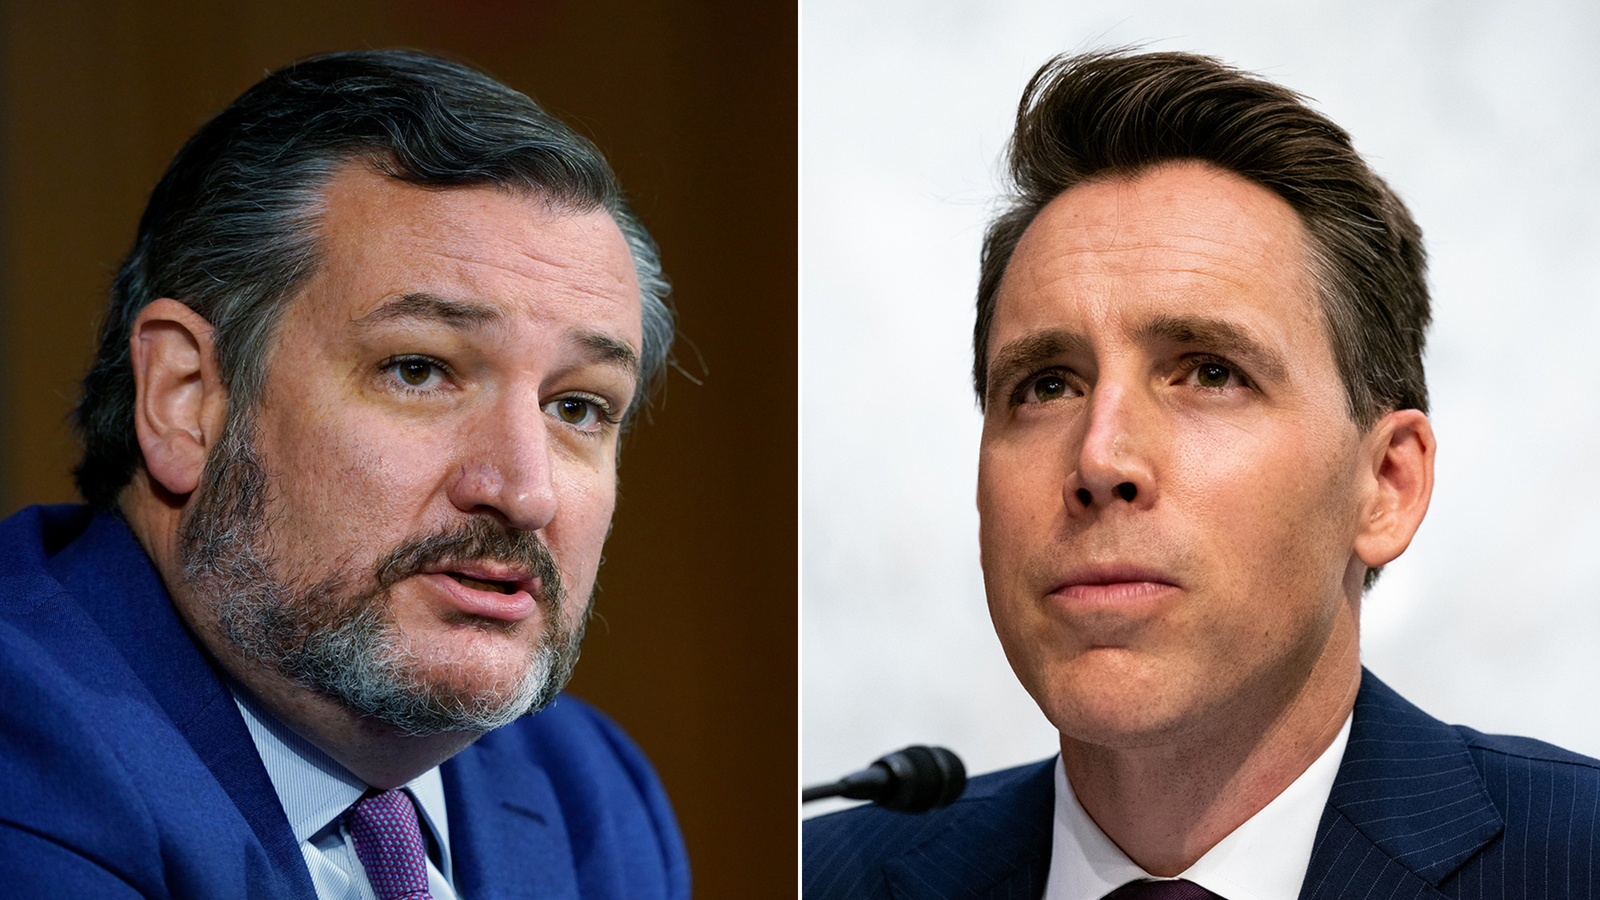 Seven Senate Democrats request ethics probe into Cruz and Hawley over Capitol riot